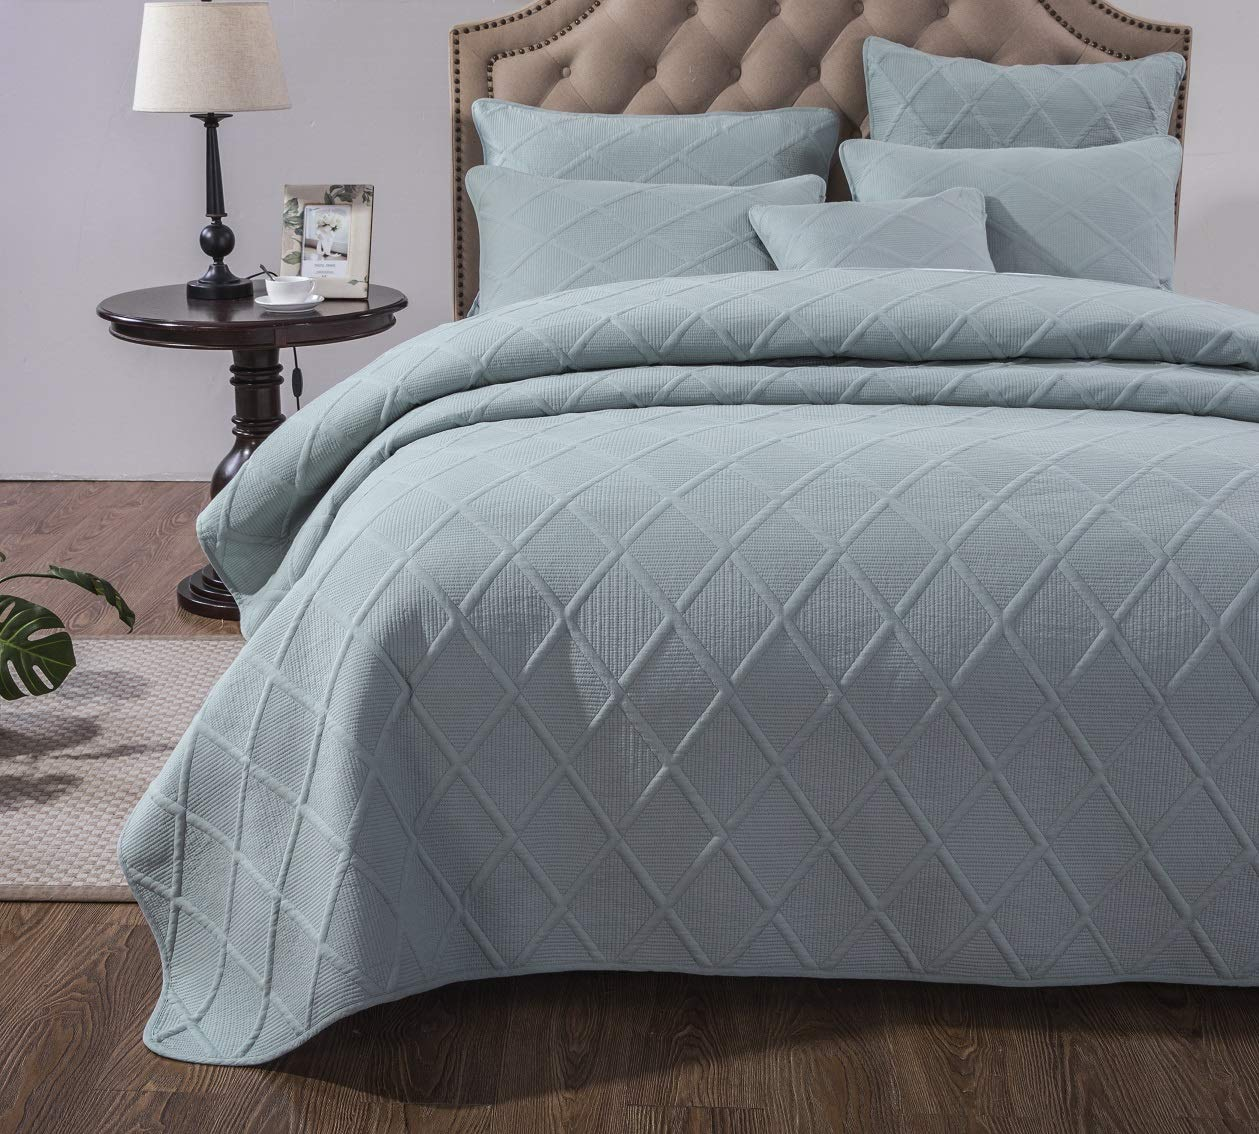 Seafoam Full Tache Rustic Princess Dusty bluesh Pink Soothing Pastel Solid Soft Cotton Geometric Diamond Stitch Pattern Stone Wash Quilted Bedspread Quilt 3 Piece Set, Queen